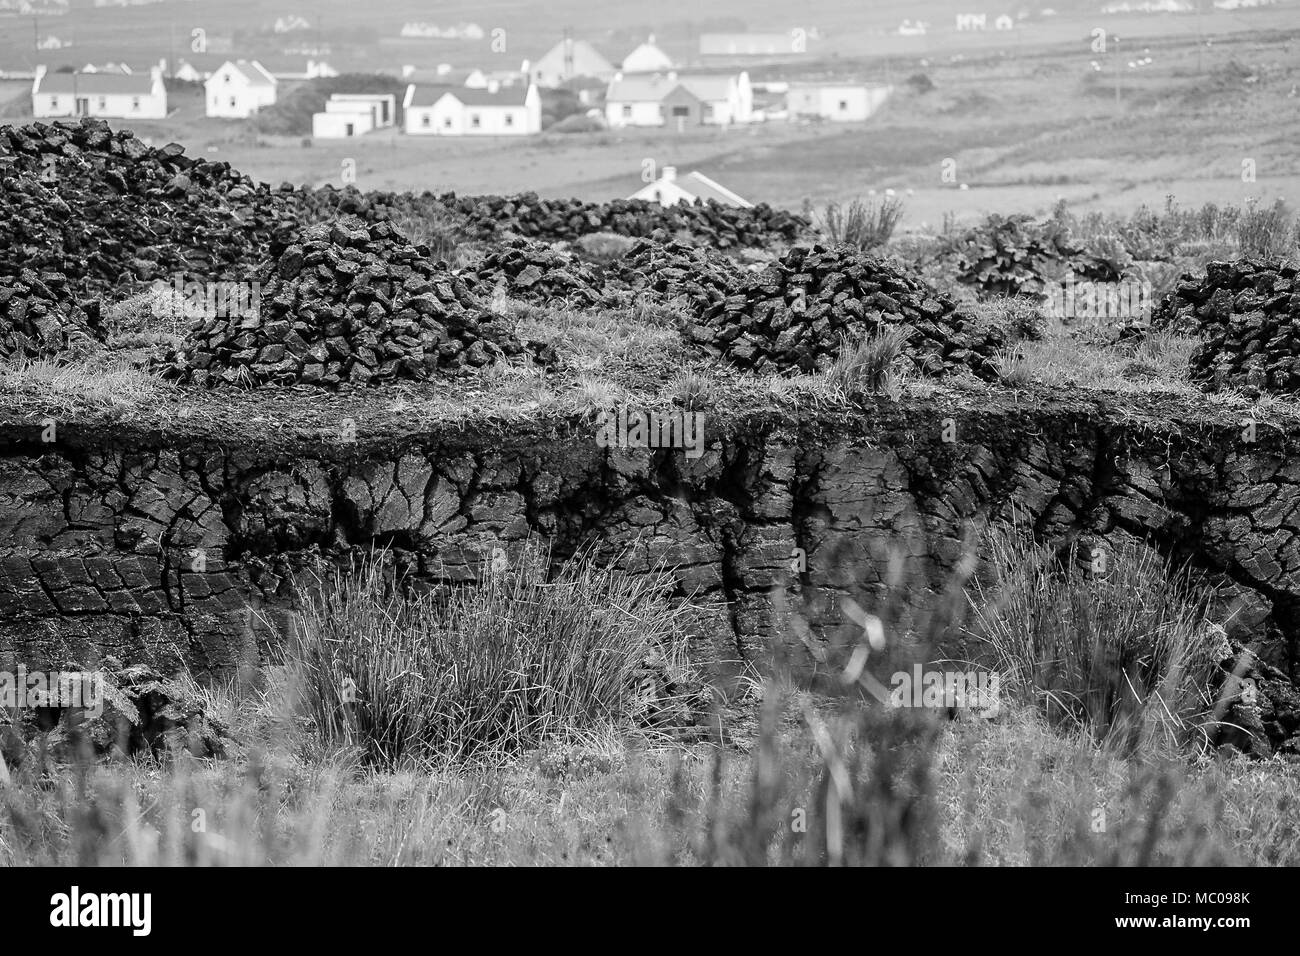 Black and white scene of peat bog with village background on Achill Island, County Mayo in Ireland. Horizontal of a peat cut, with turf  piles drying - Stock Image